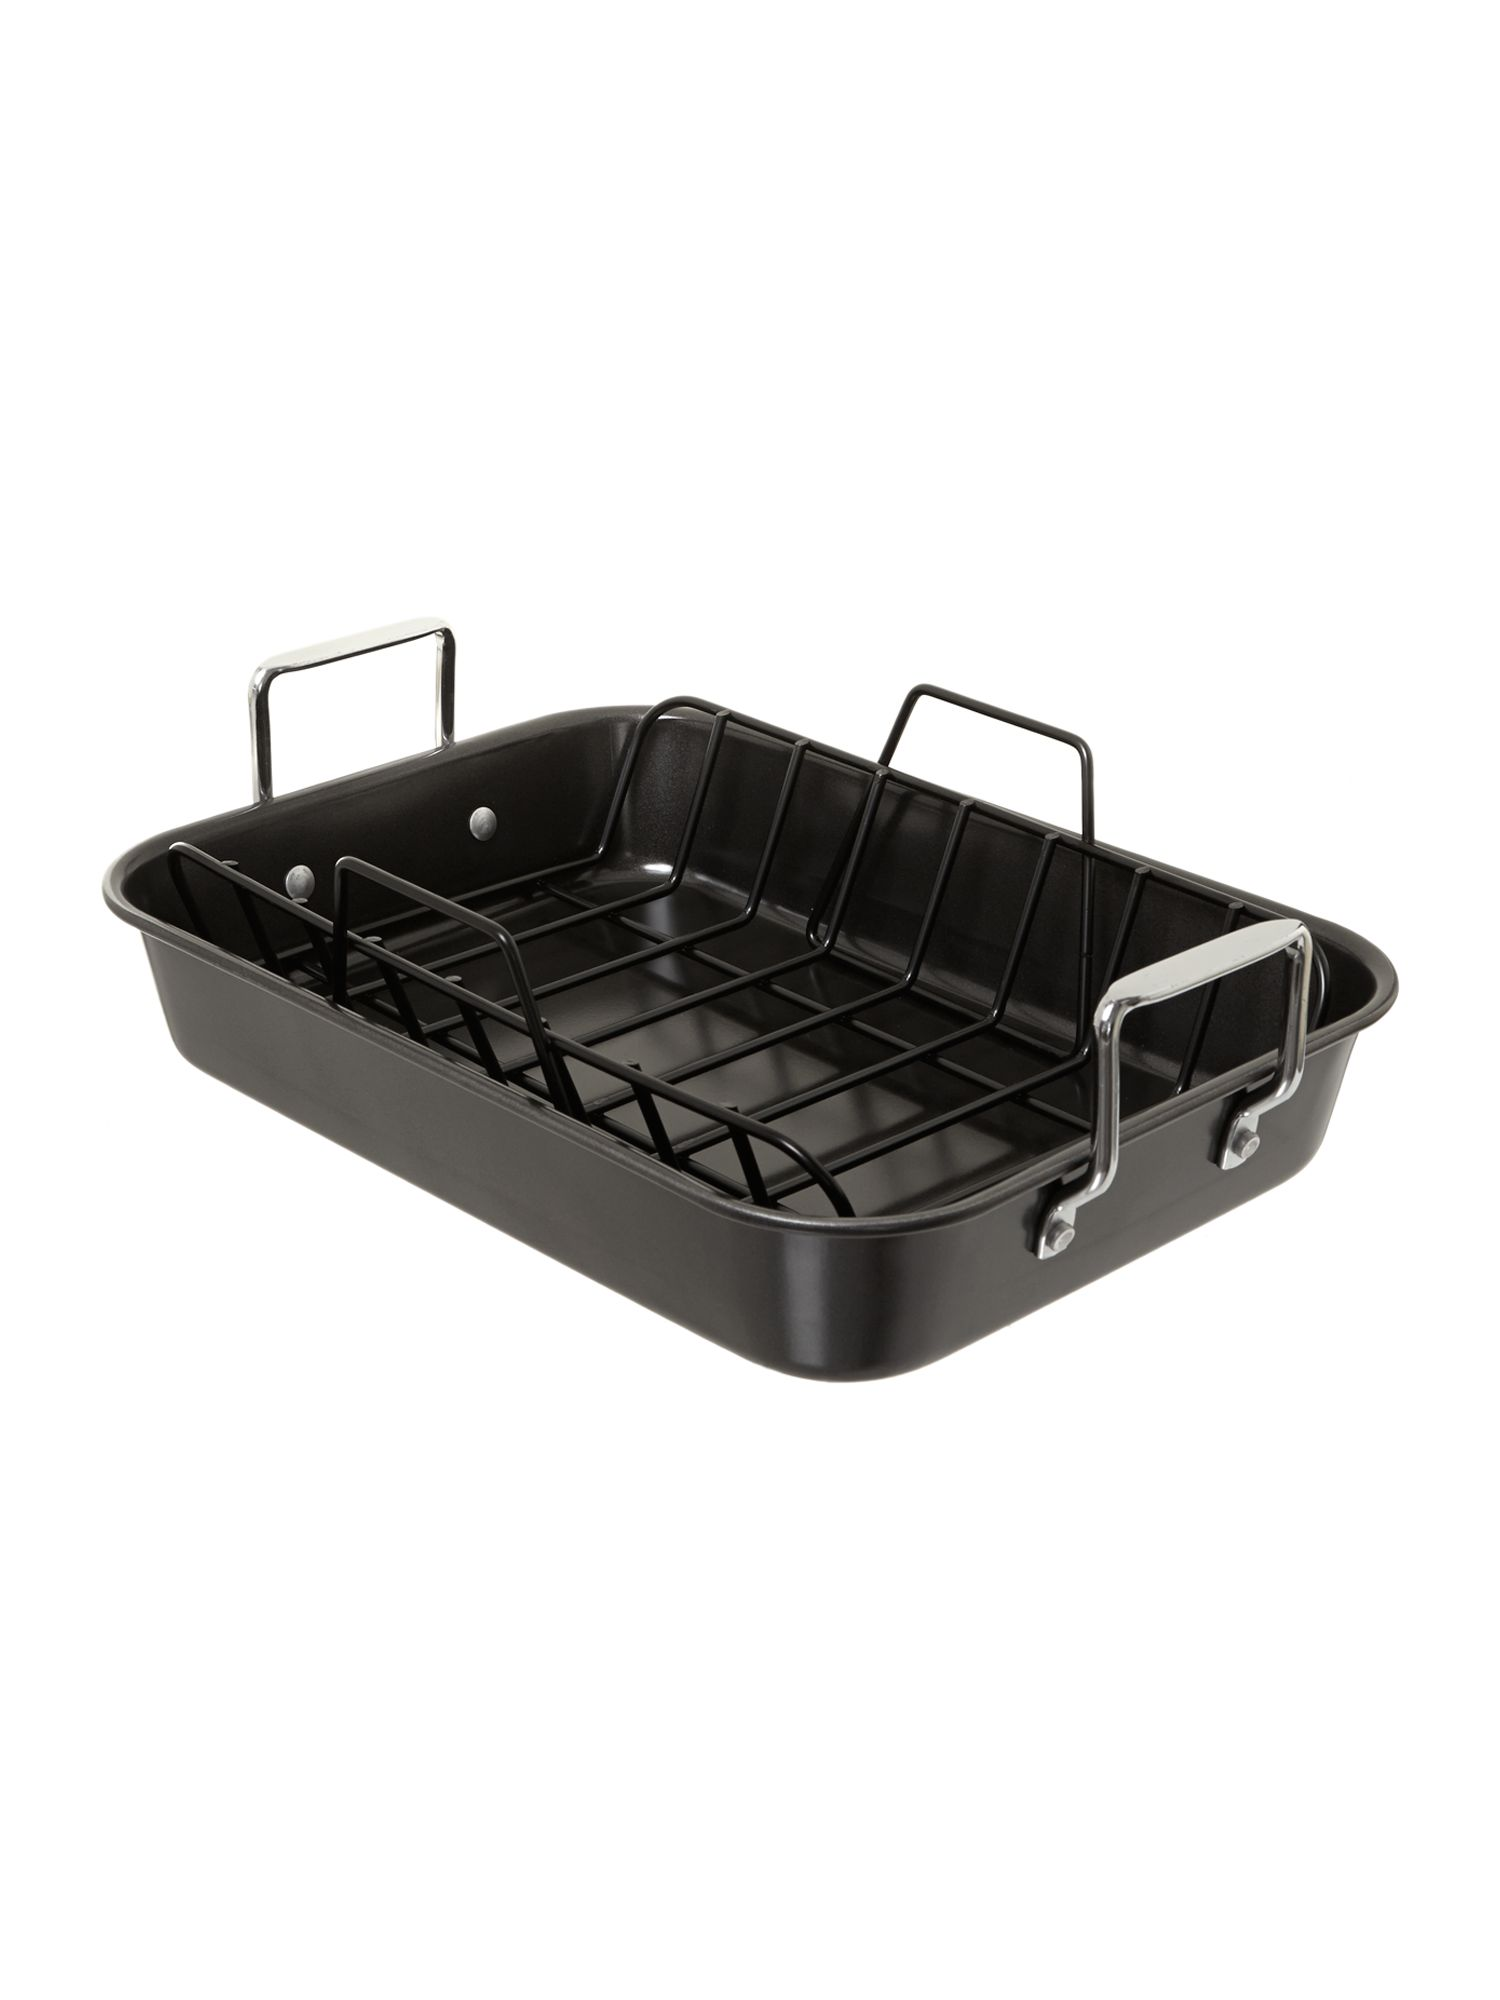 Stellar 40 x 28cm roast and rack set